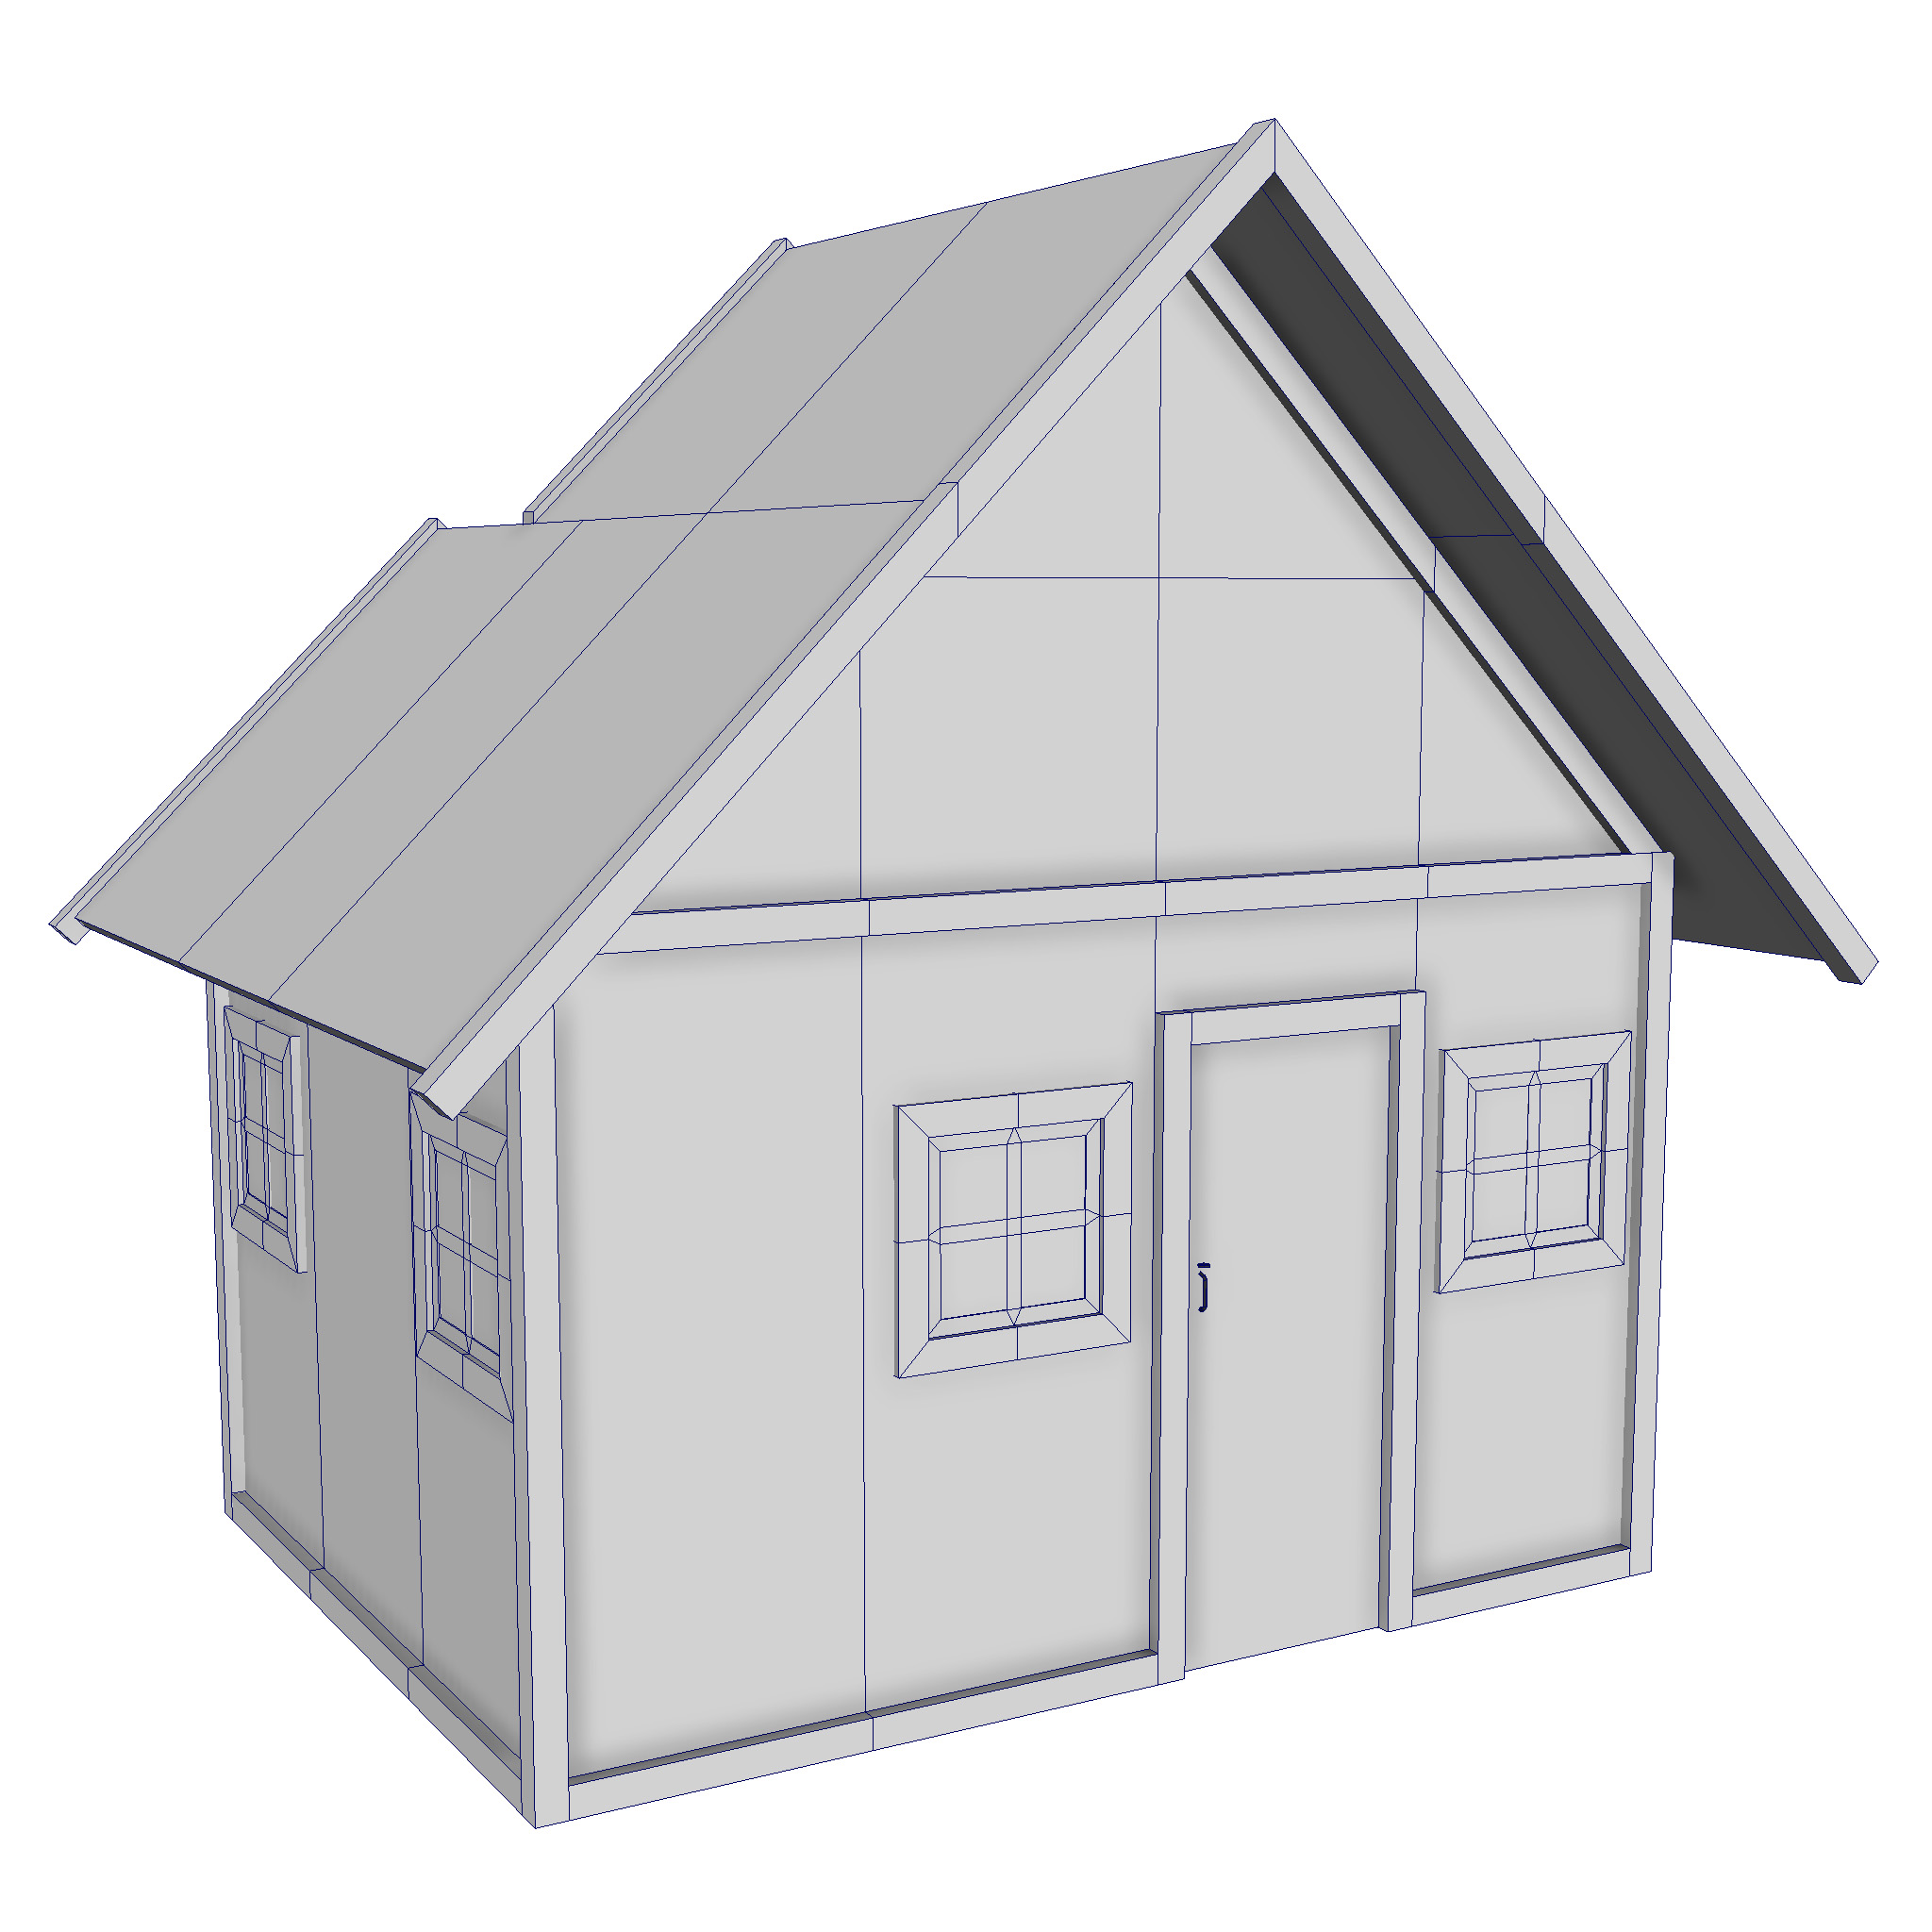 modular wood house set 3d model fbx ma mb 271448